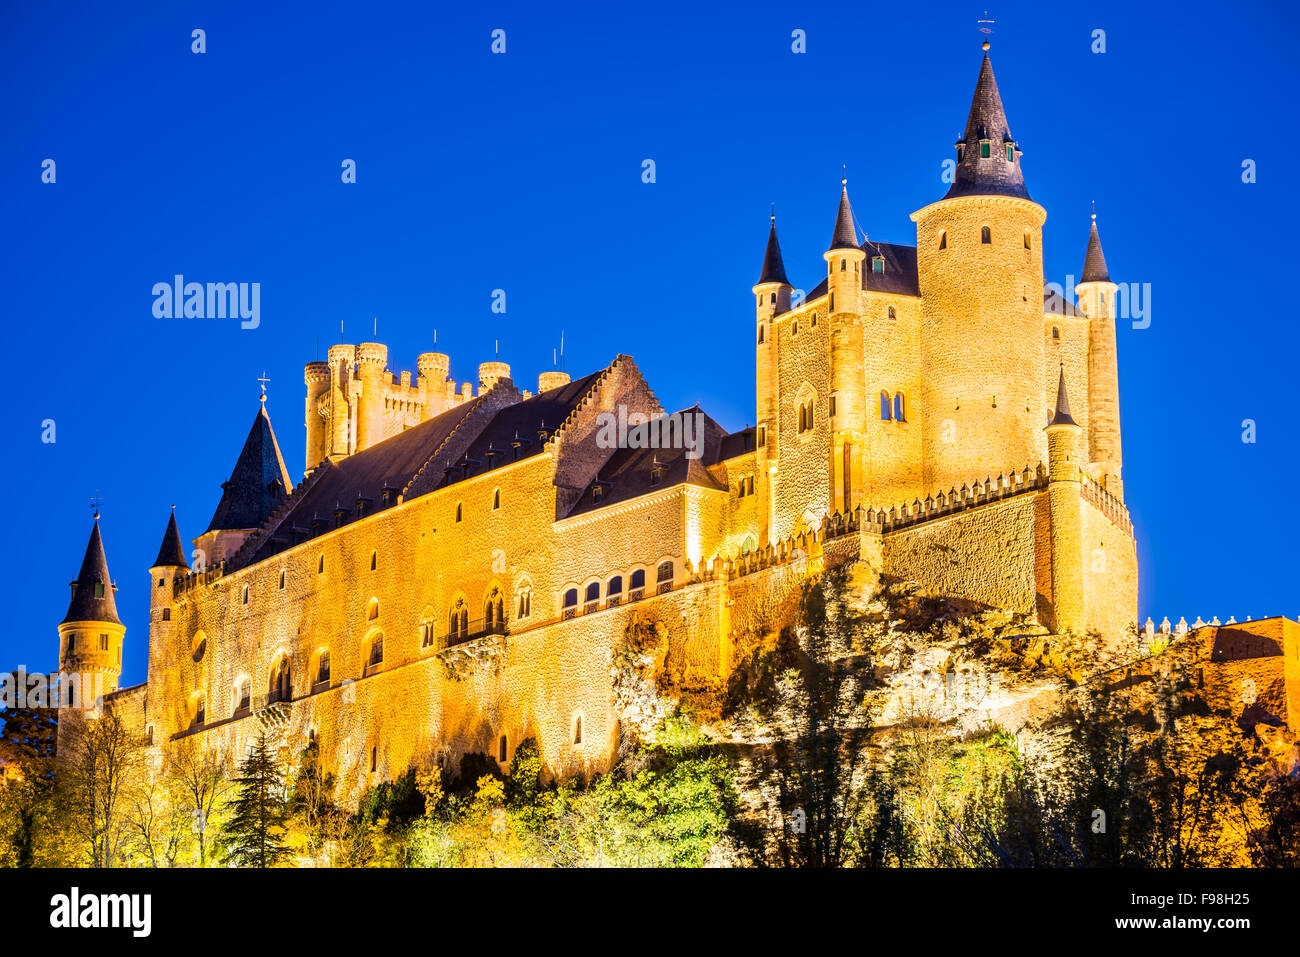 Segovia, Spain. Autumn dusk view of Castle of Segovia, known as Alcazar and built in 12th century in Castile and - Stock Image